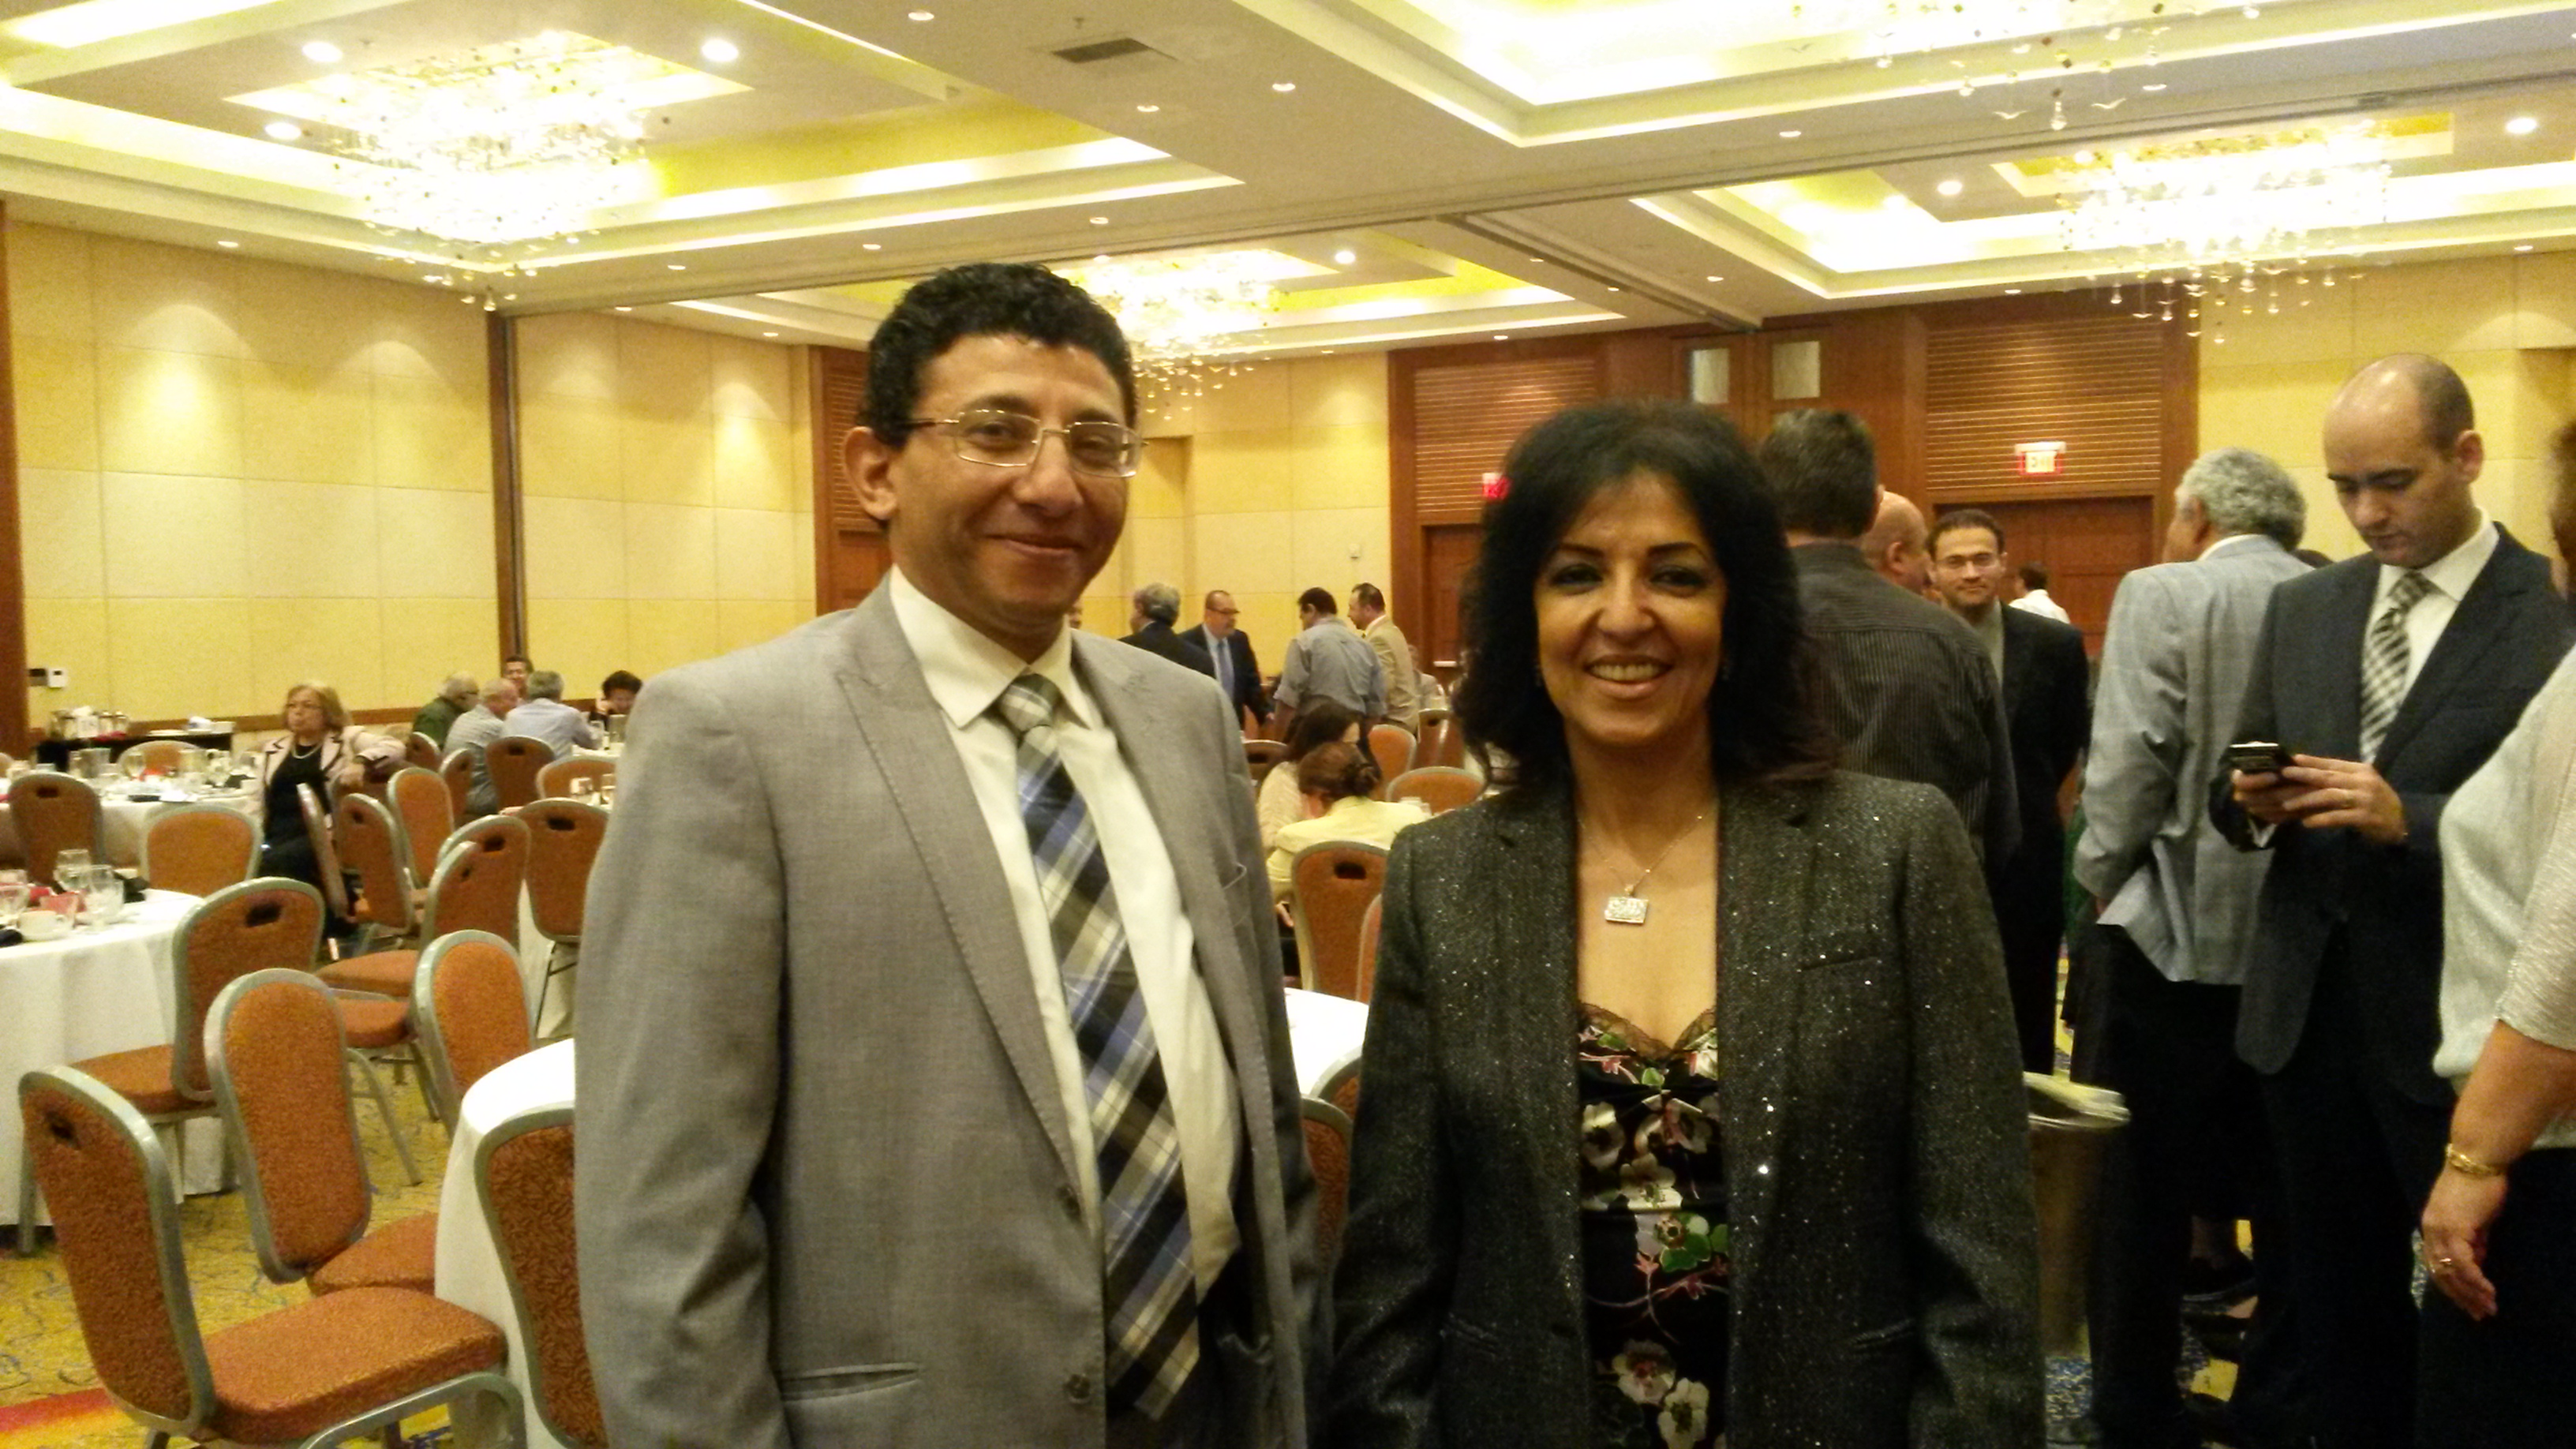 Ambassador Lamia Mekhemar, the consul general of Egypt in Los Angeles in USA and Nagy Guorgui, Chairman of EACHAM